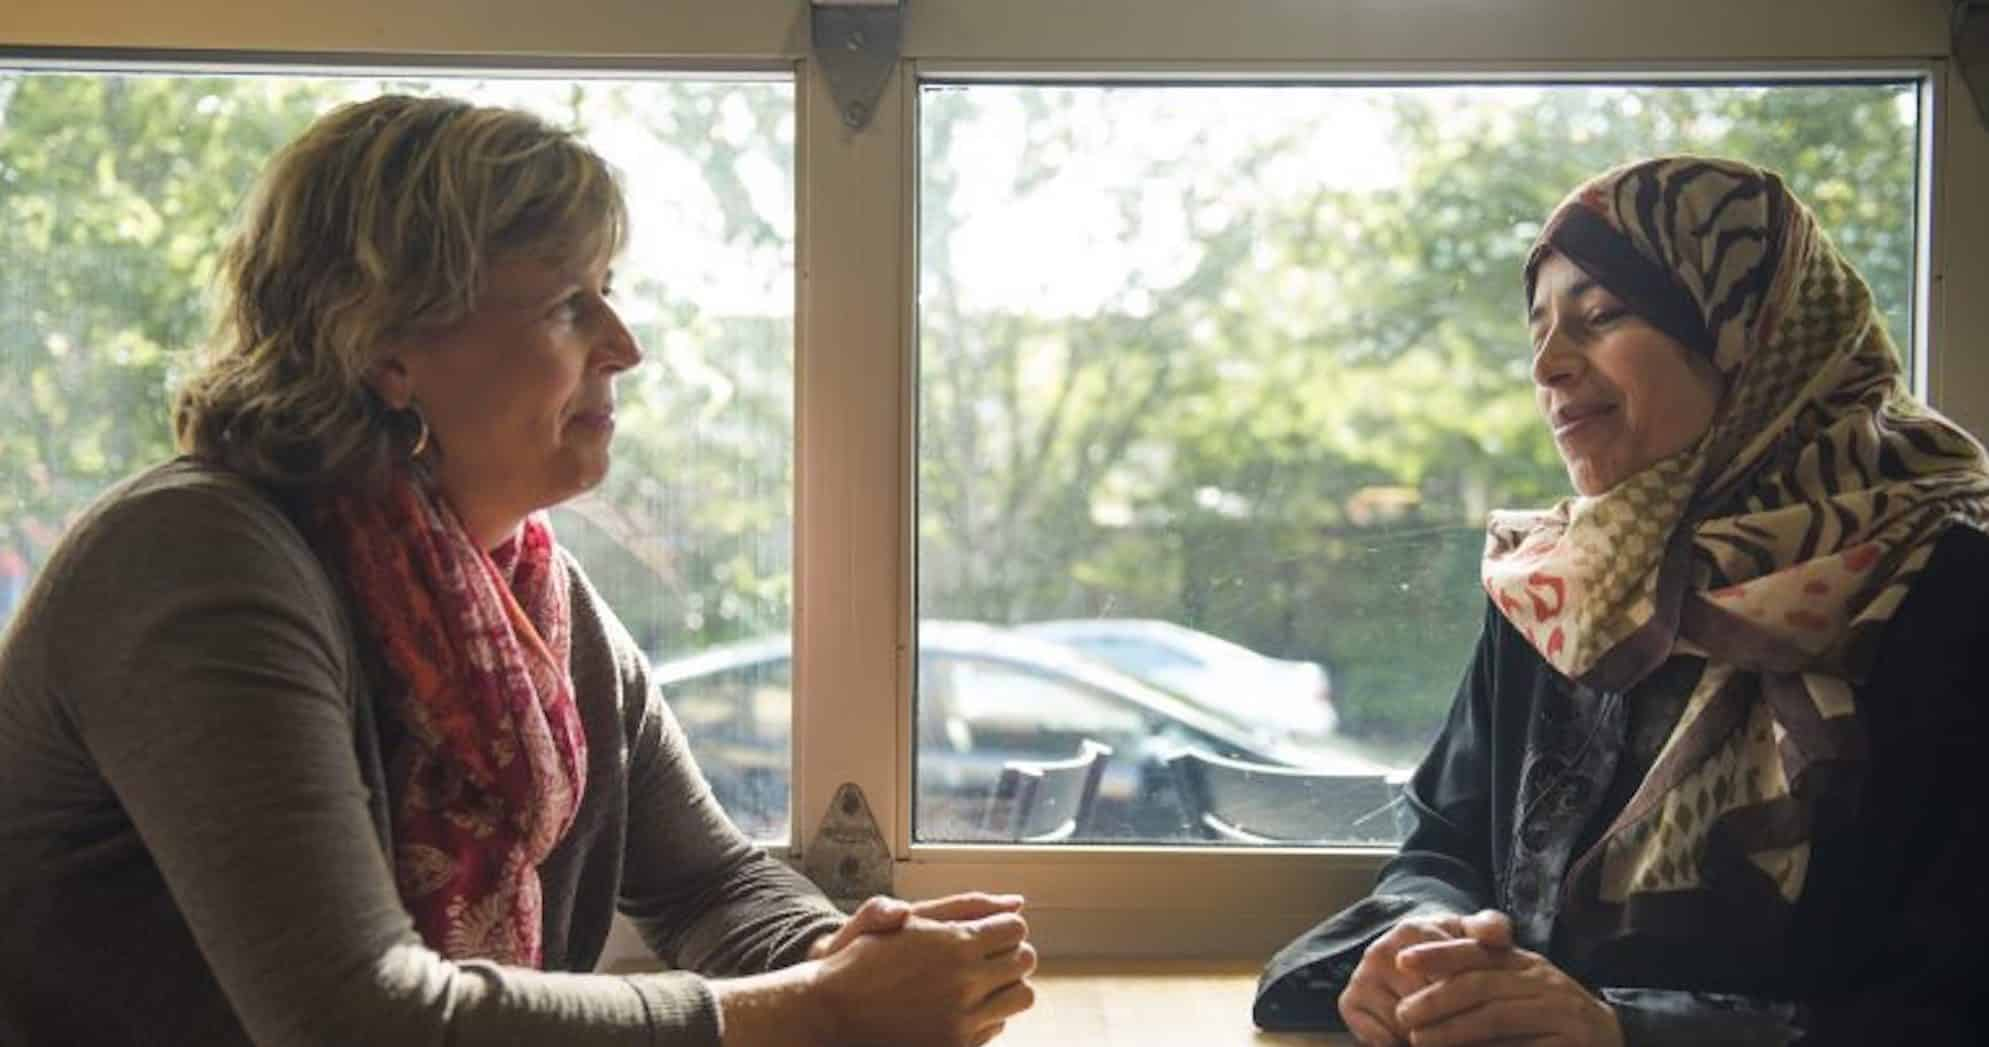 blonde woman and woman wearing headscarf at window table